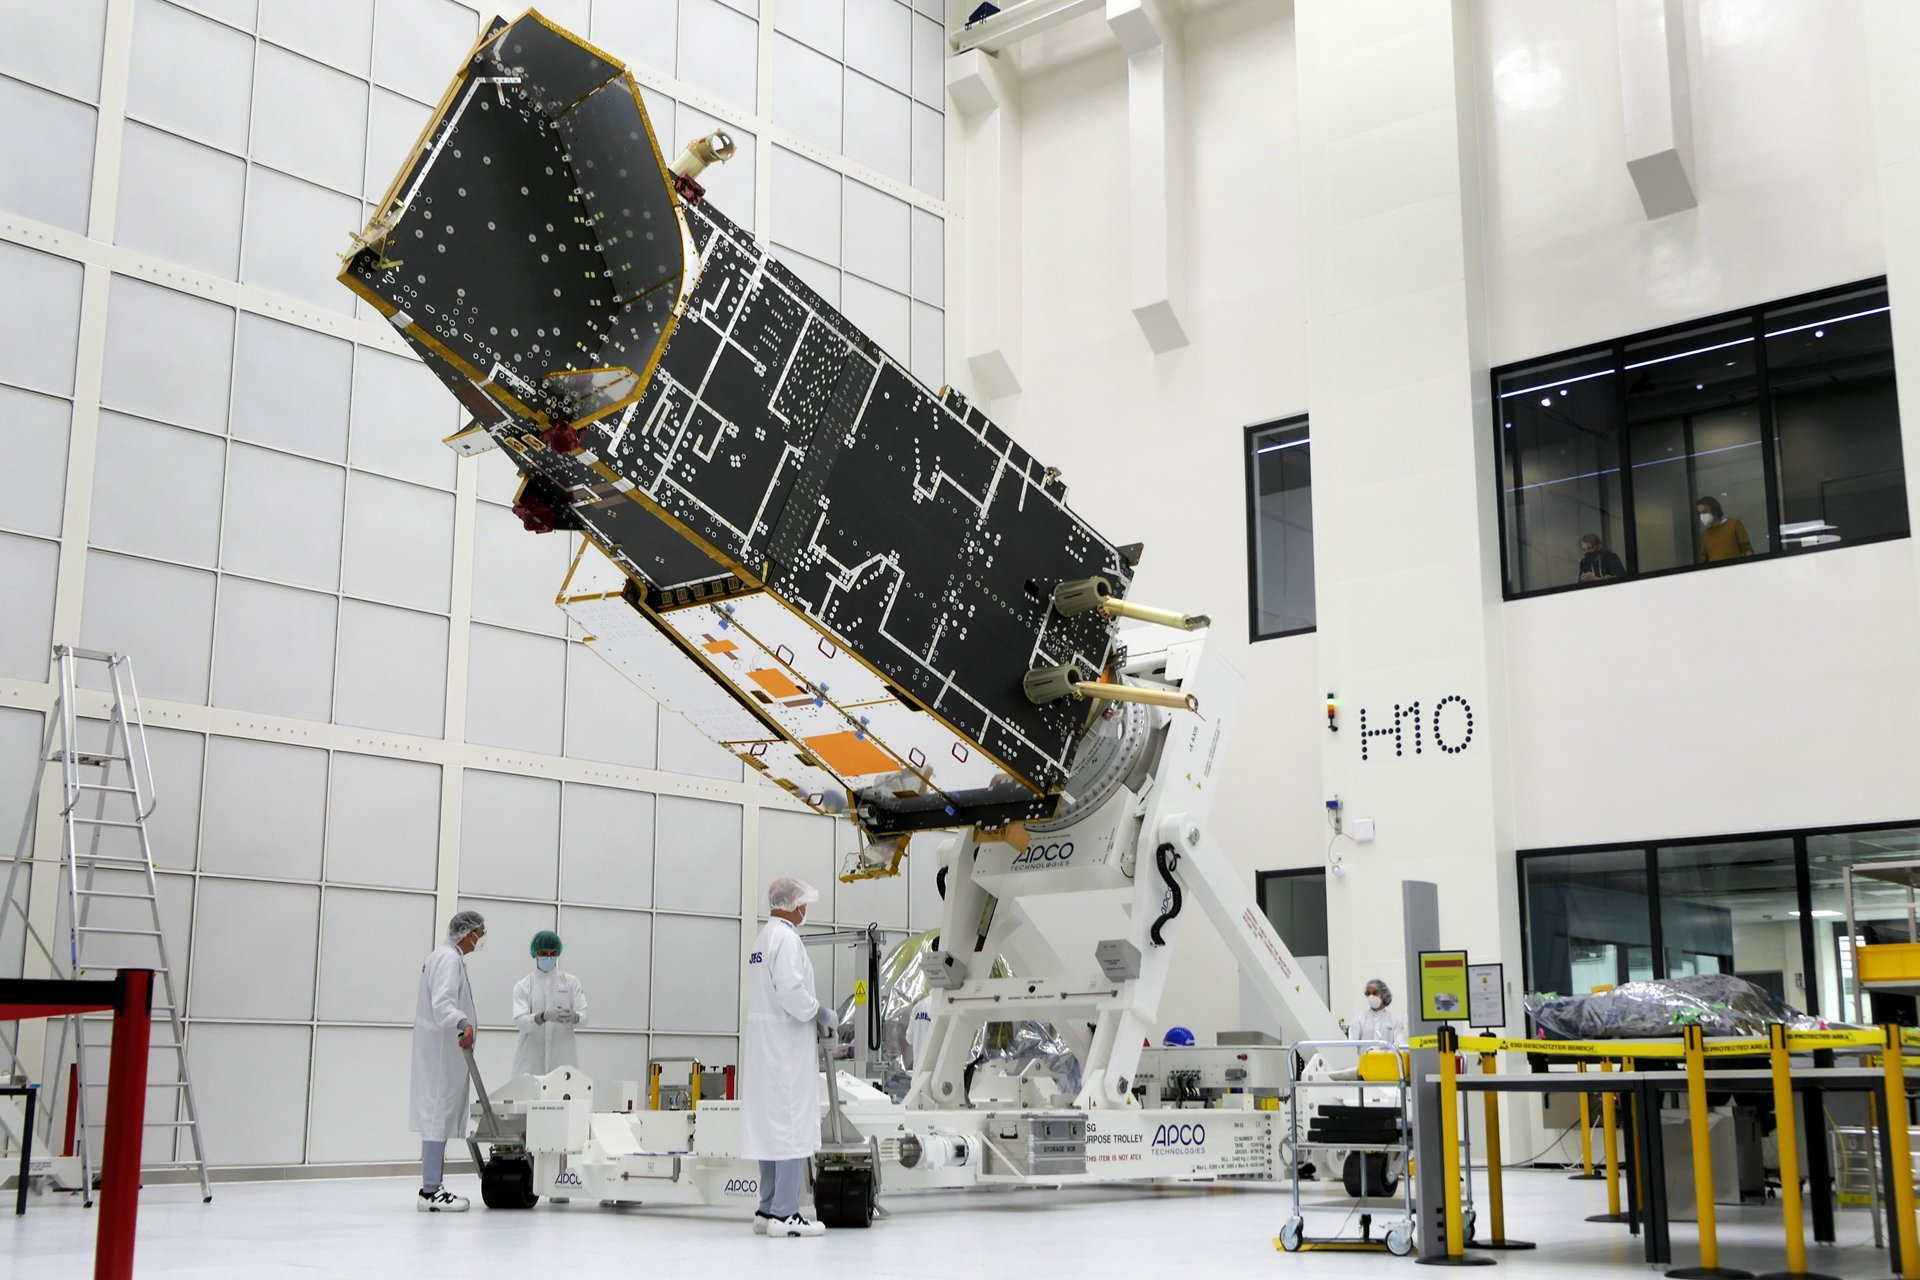 """It is six metres high, more than three metres wide, and weighs just over a tonne, and it forms the backbone of the new, second generation of polar-orbiting weather satellites. The structure for the first """"B"""" satellite of the MetOp Second Generation (MetOp-SG) series has arrived at Airbus' satellite integration centre in Friedrichshafen (Germany)."""